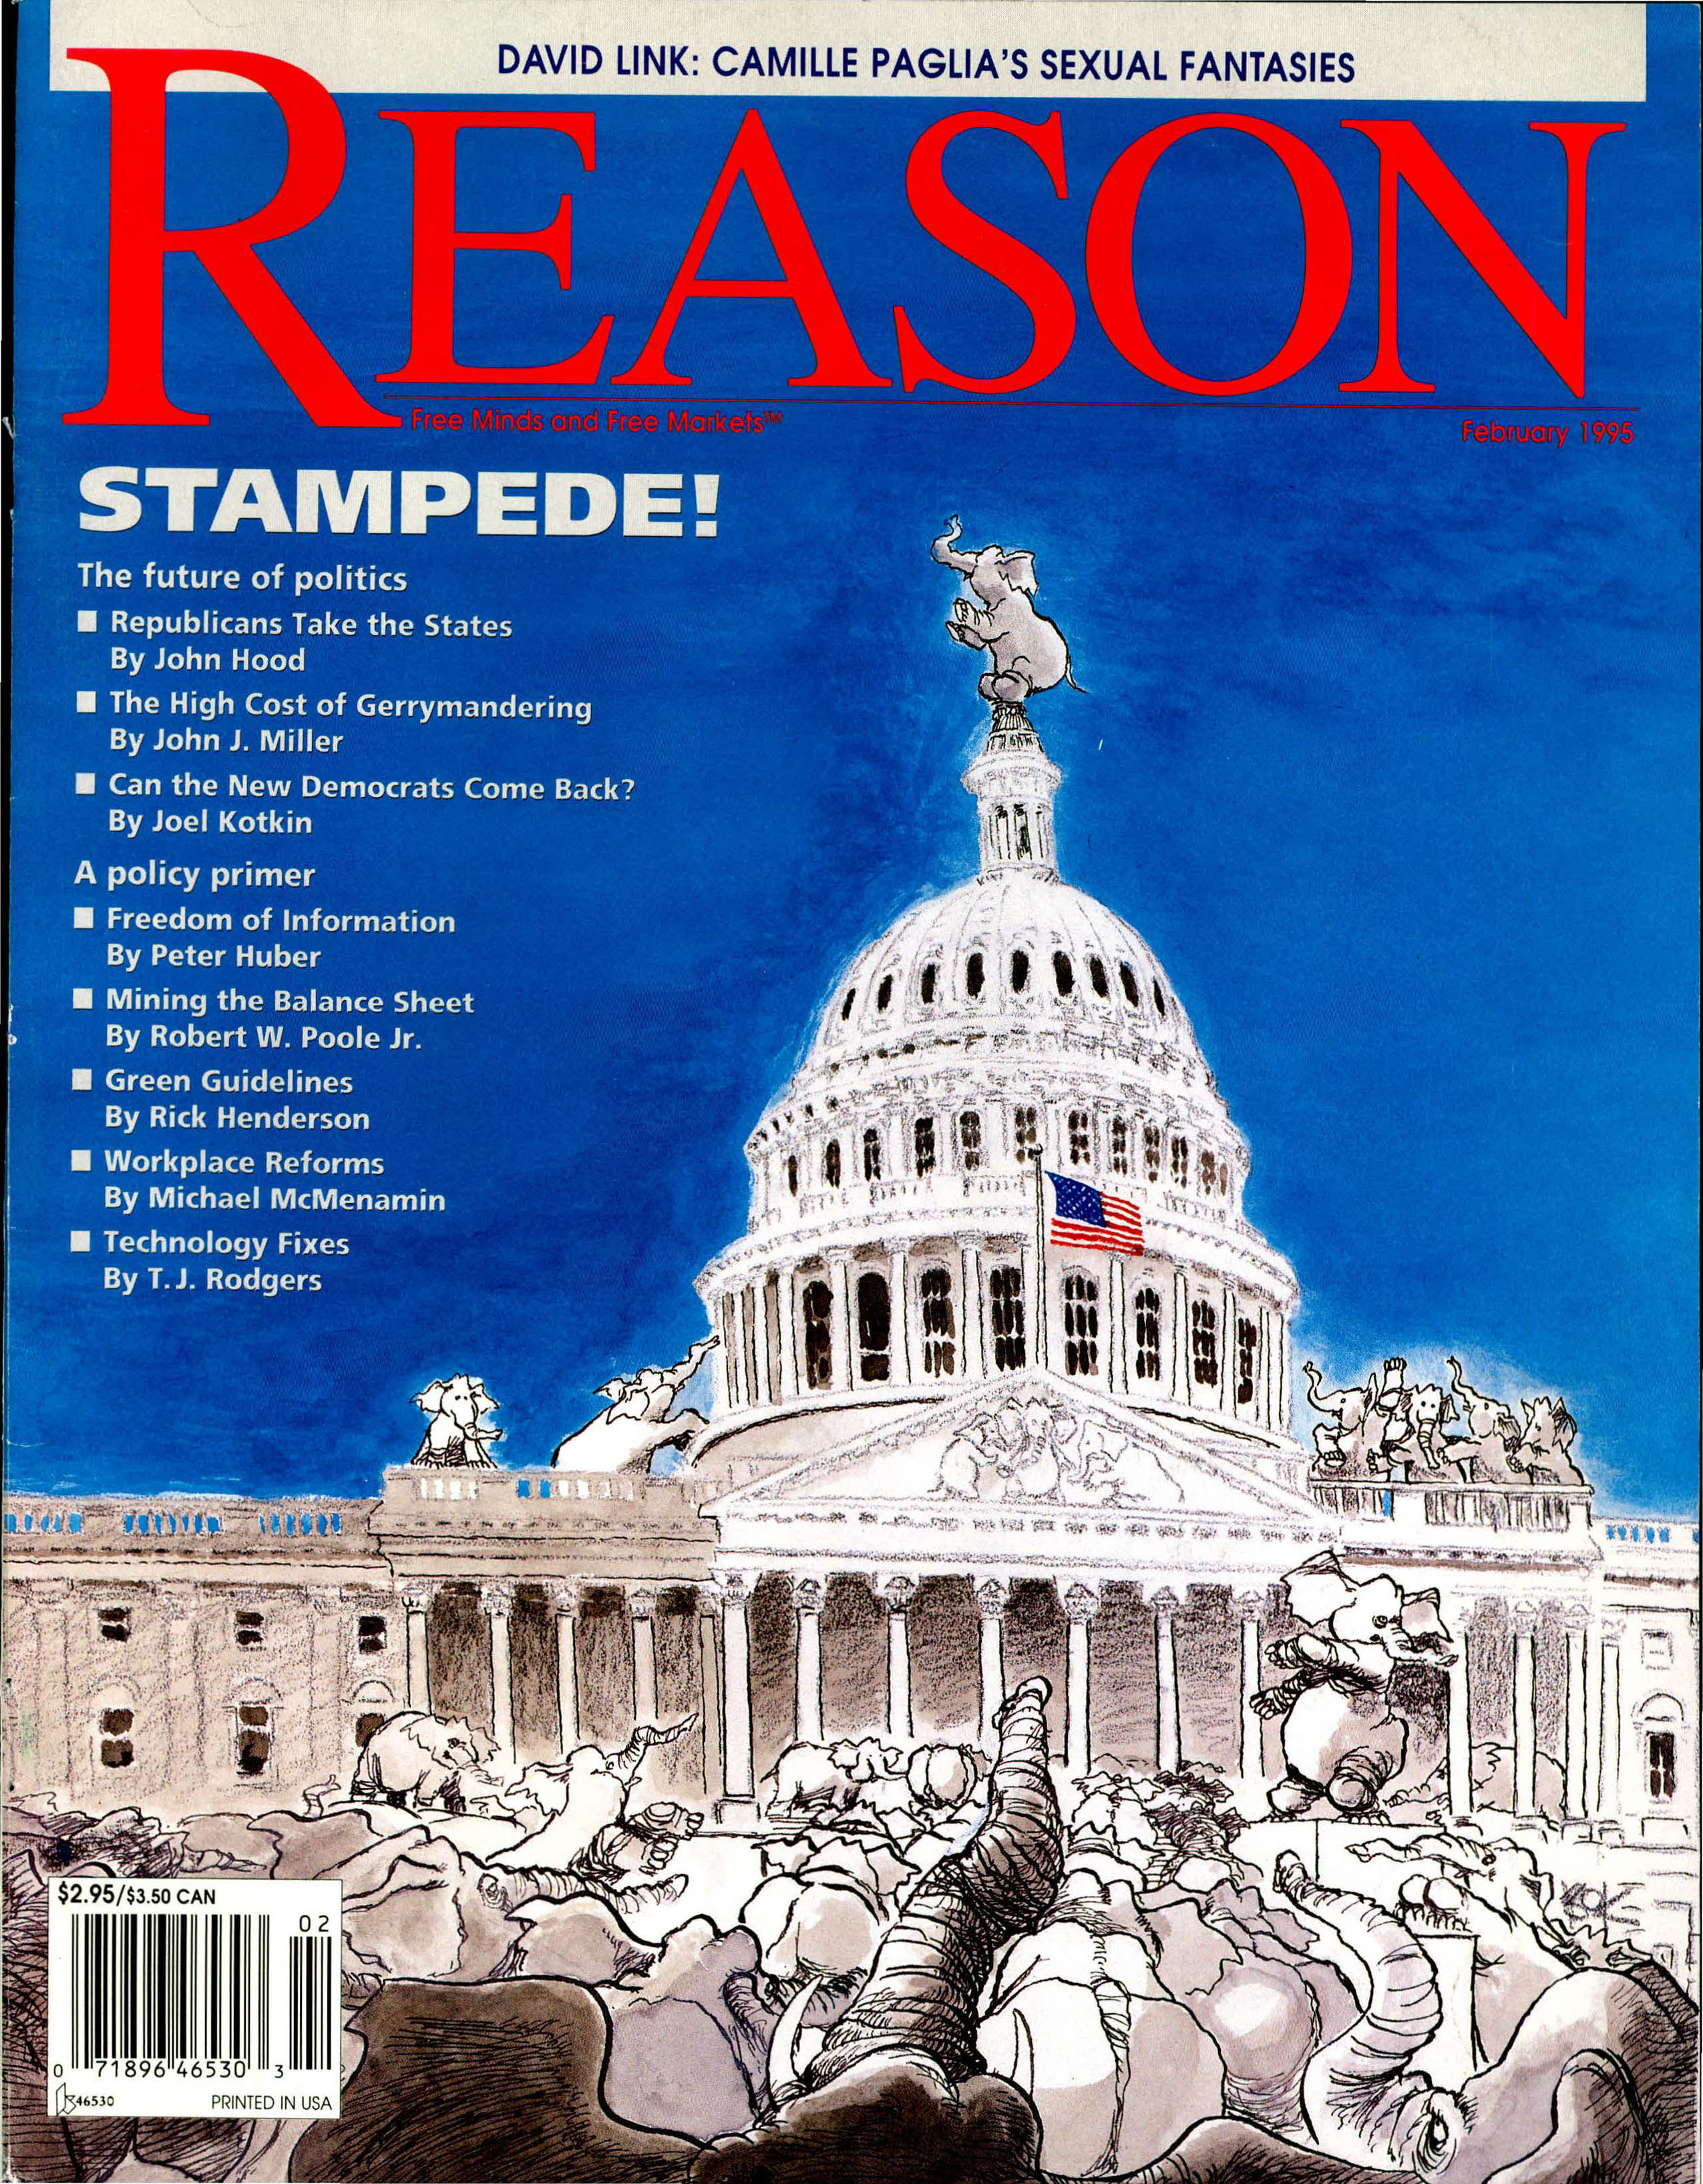 Reason Magazine, February 1995 cover image